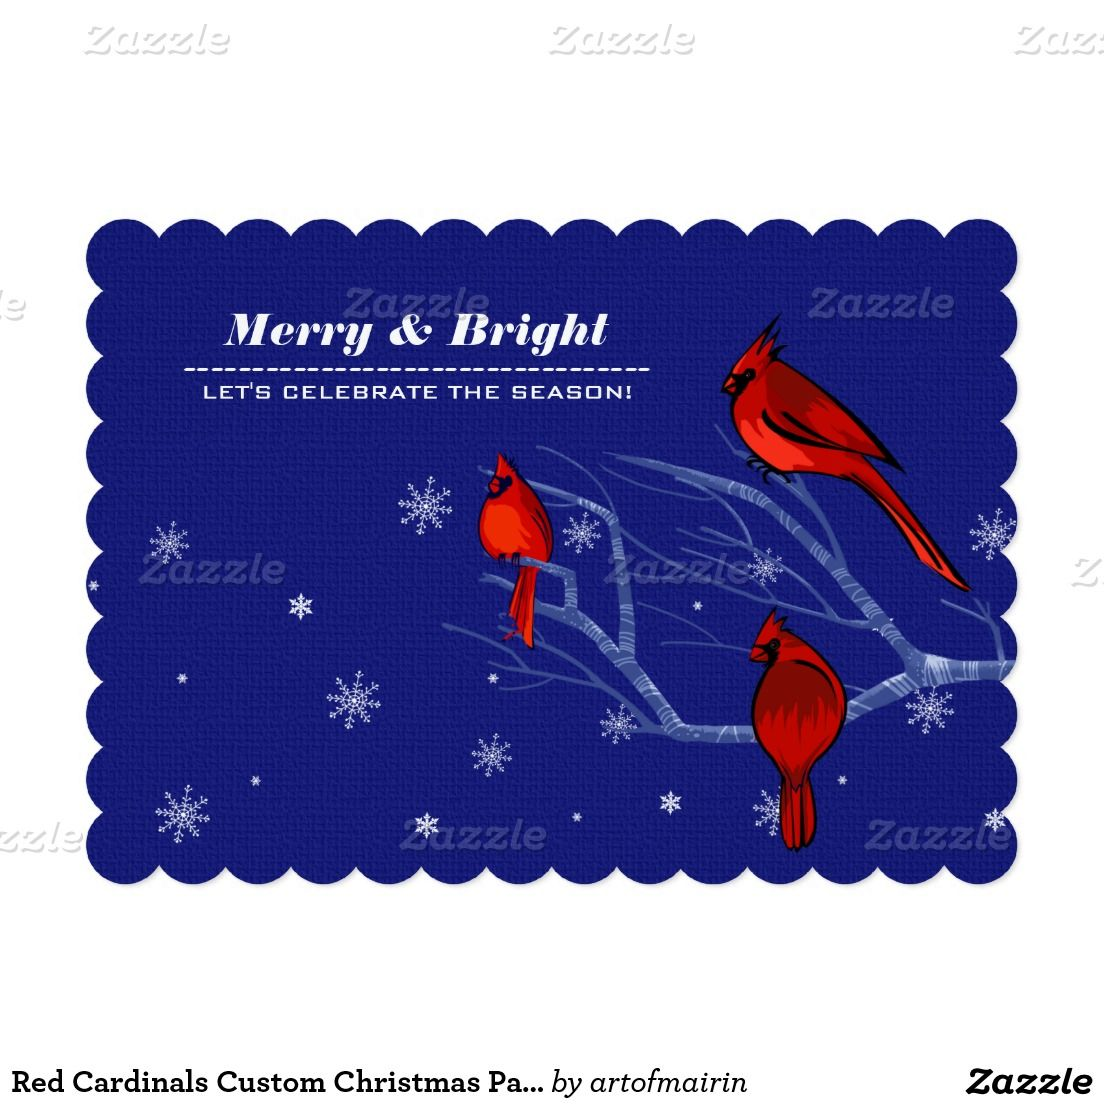 Merry and Bright. Celebrate the Season. Red Cardinals design Customizable Christmas Holiday Party Invitations. Matching cards, postage stamps and other products available in the Christmas & New Year Category of the artofmairin store at zazzle.com